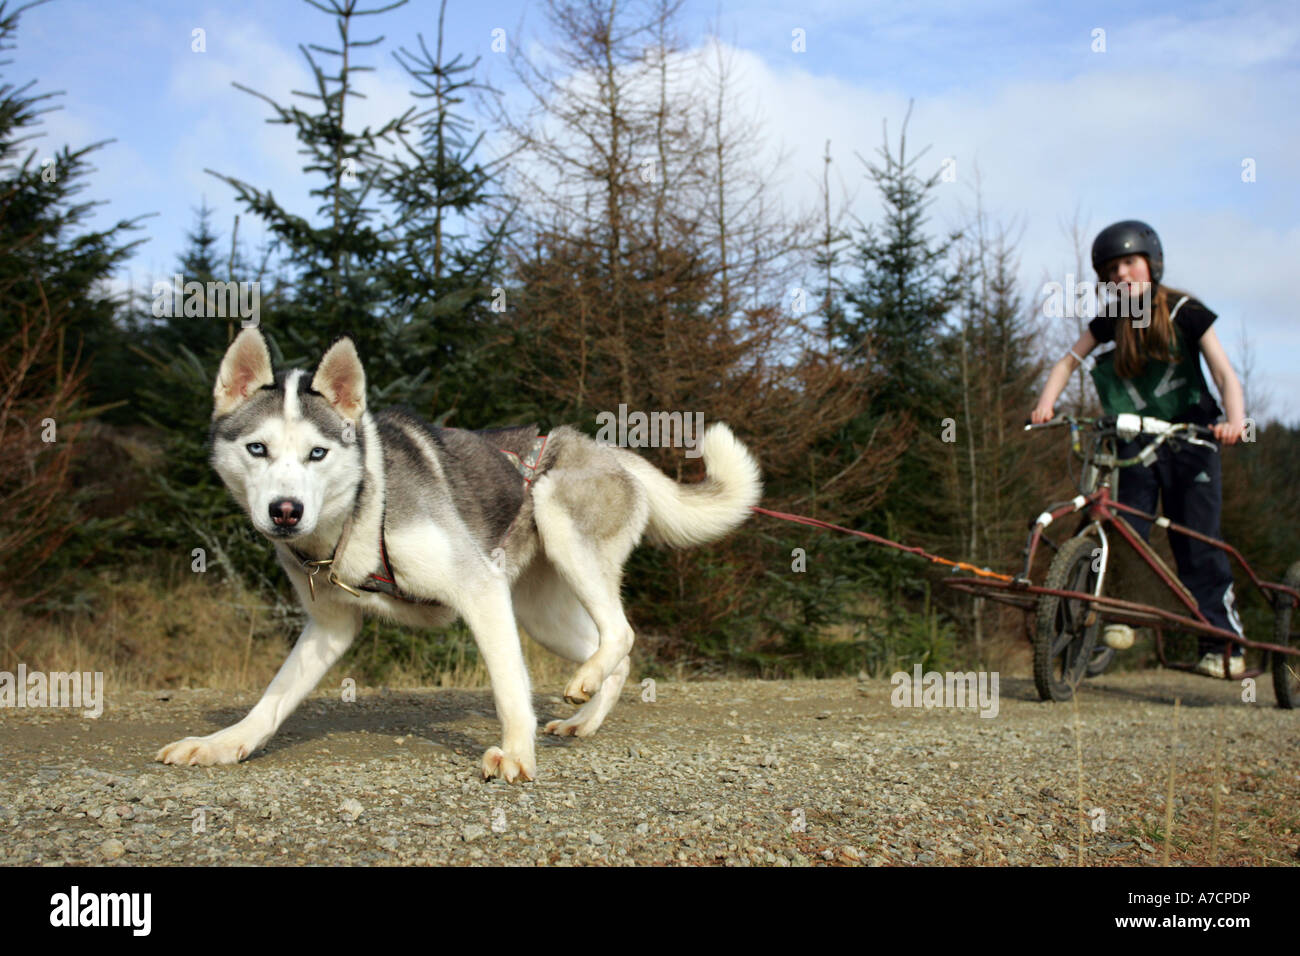 Boy competes in Husky racing at Fetteresso Forest near Stonehaven, Aberdeenshire, Scotland UK - Stock Image